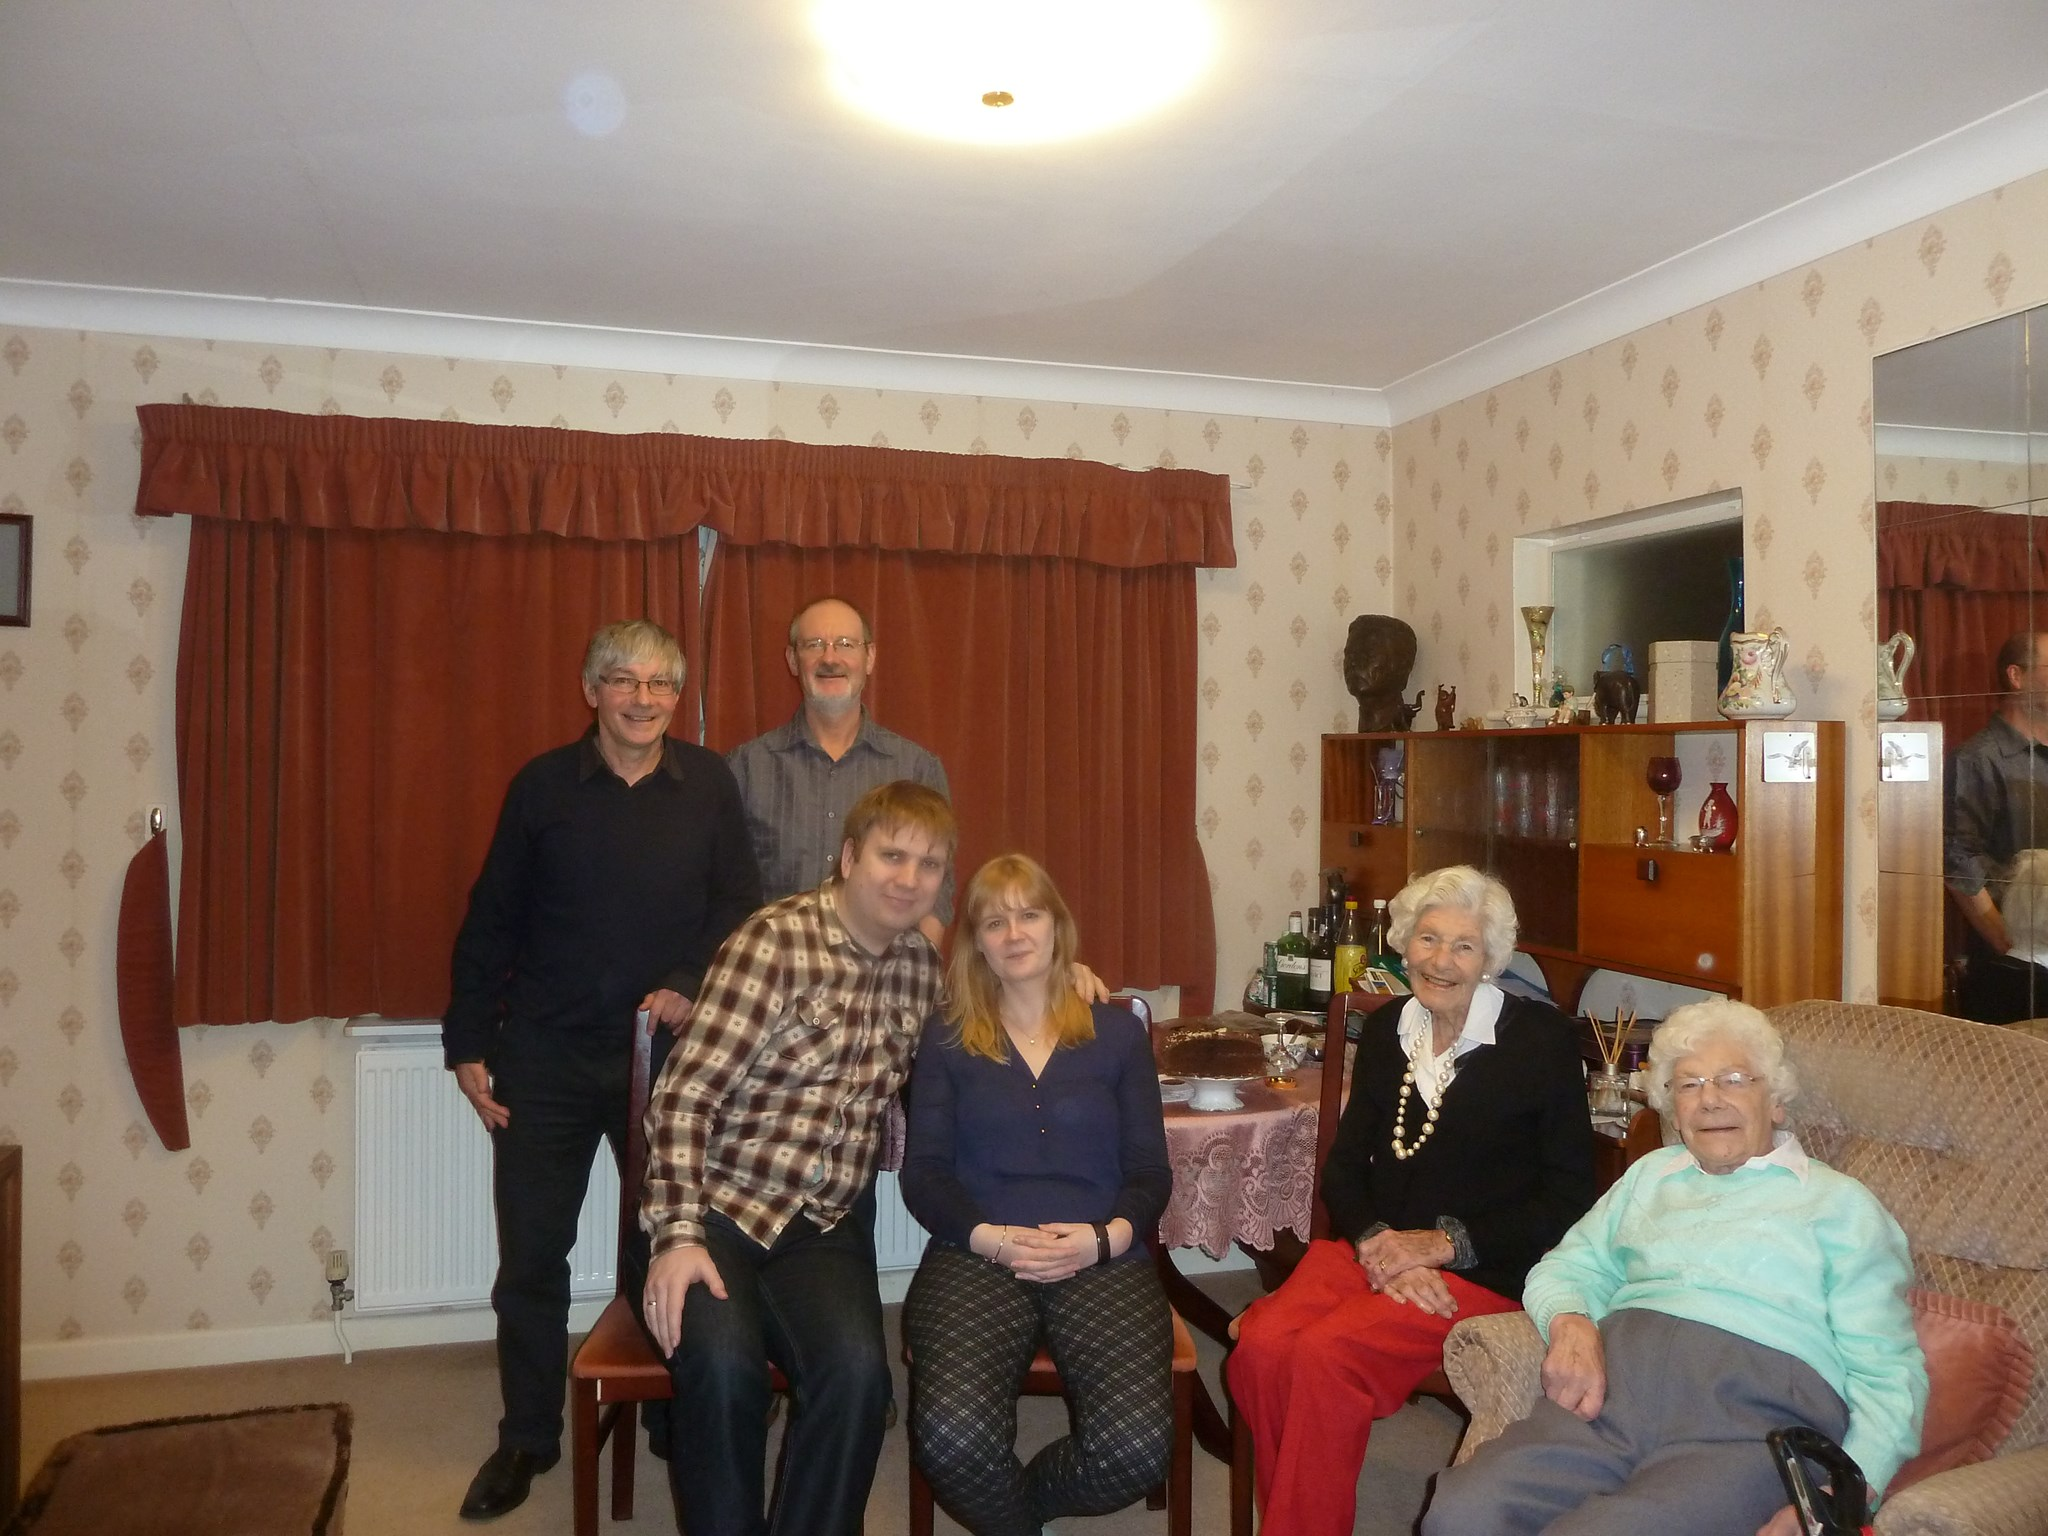 2016-01-23 Mum's 91st birthday at home